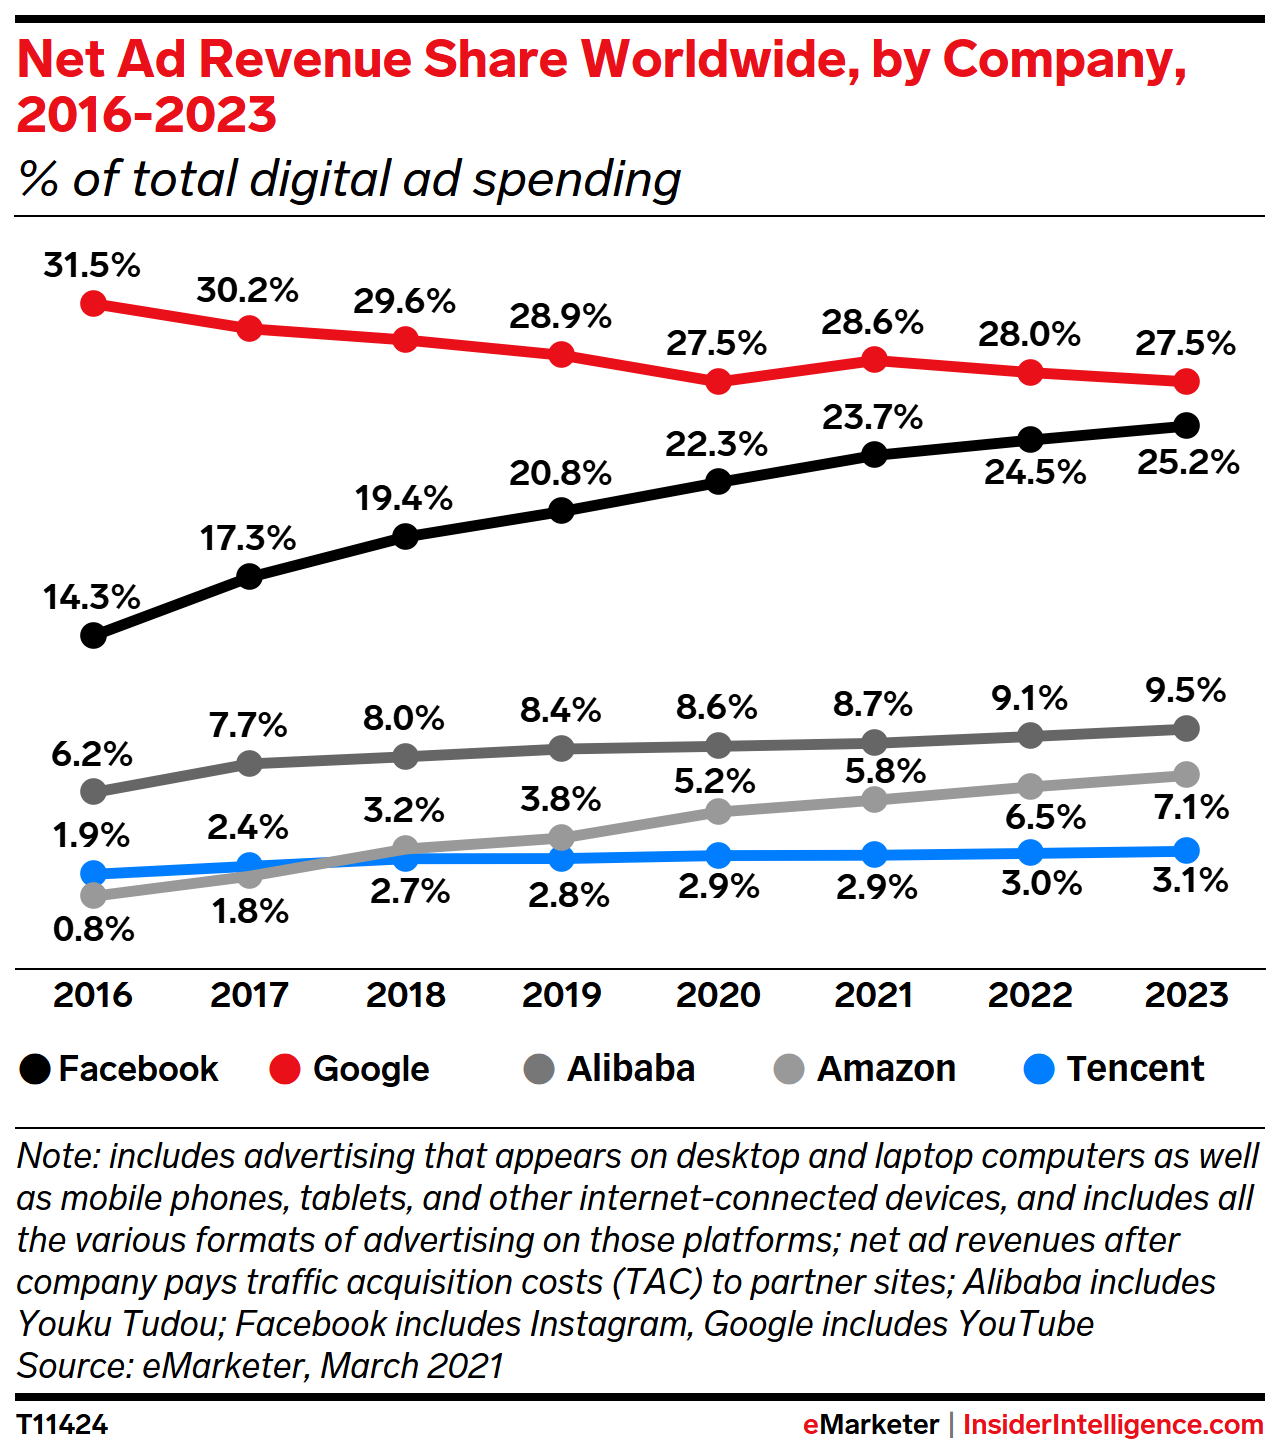 Net Digital Ad Revenue Share Worldwide, by Company, 2019-2023 (% of total digital ad spending)